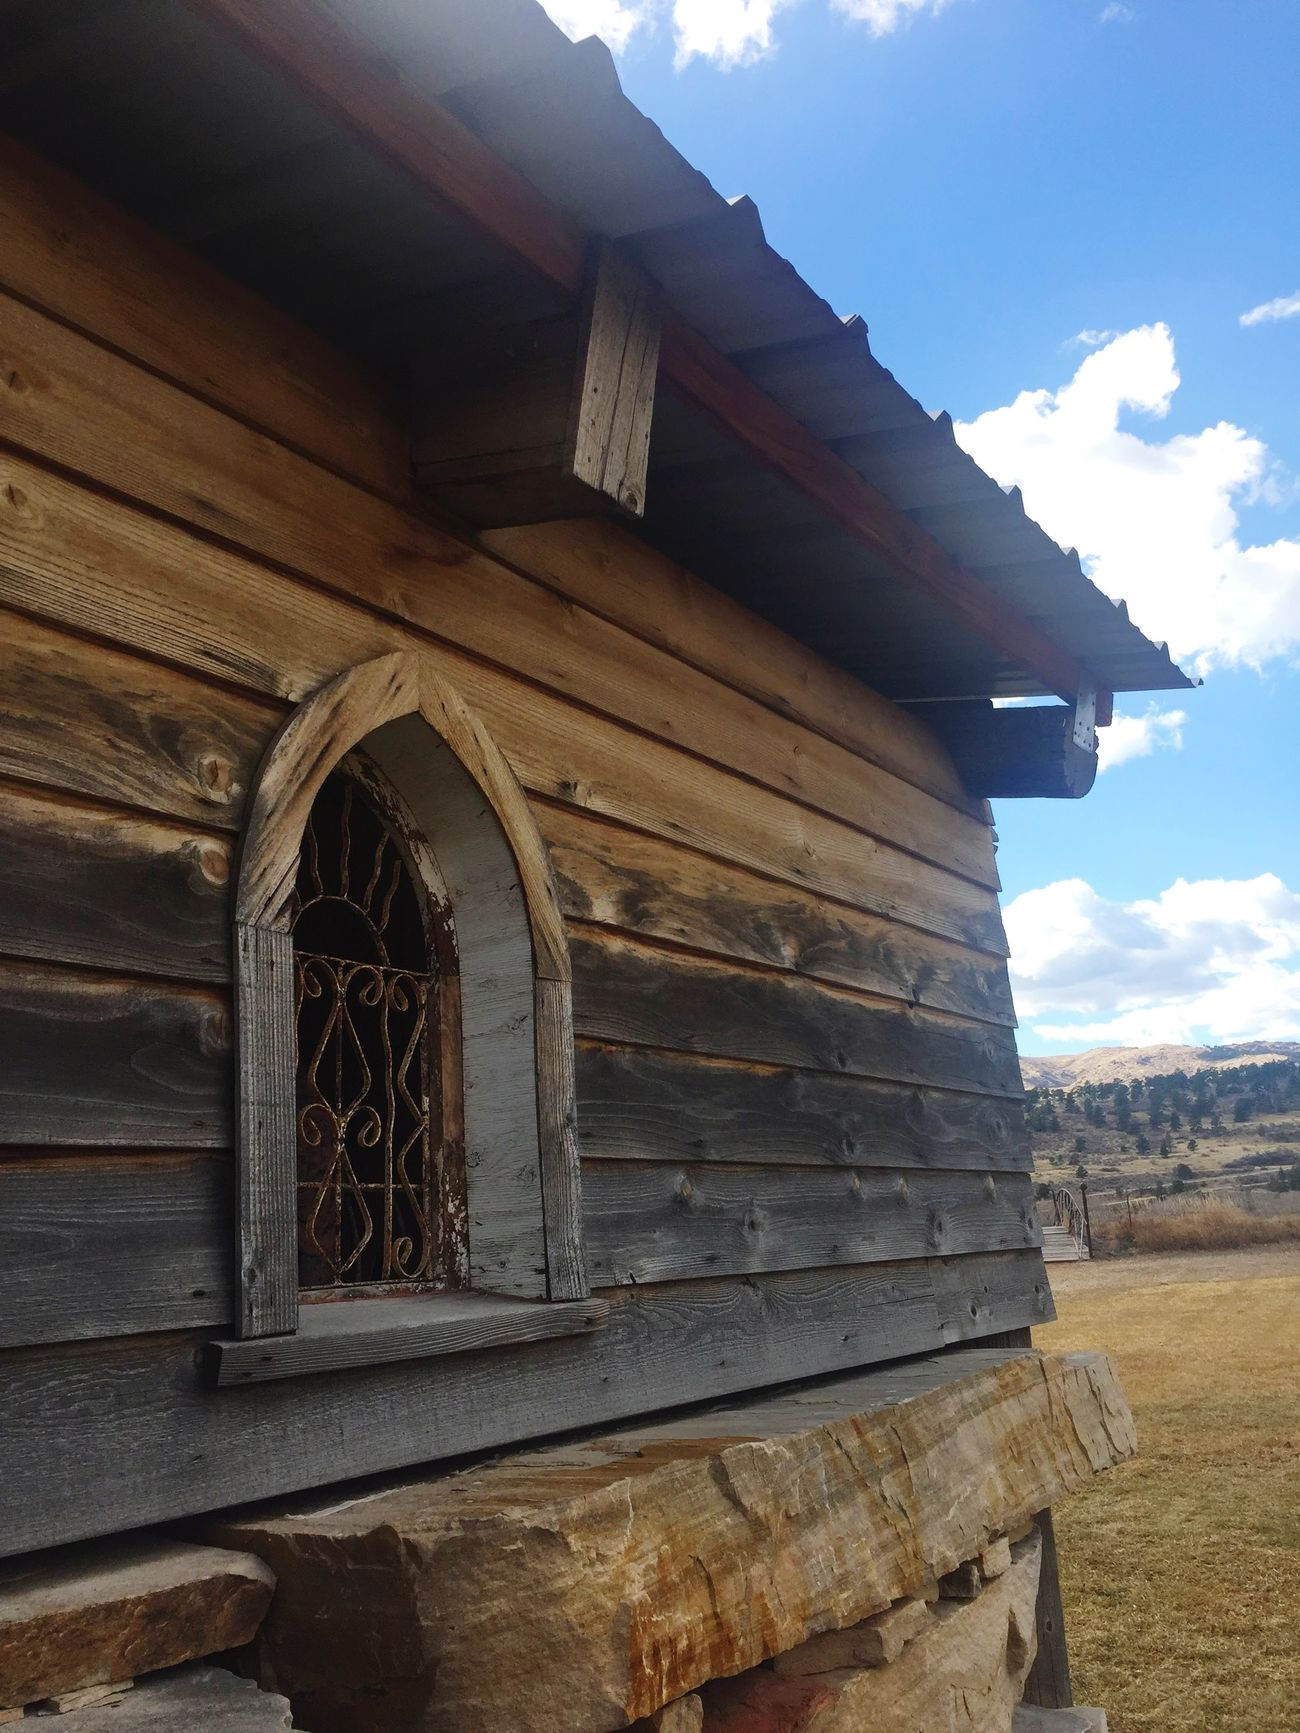 Mountain Ghost Town Wandering Built Structure Architecture Arch No People Outdoors Sky Day